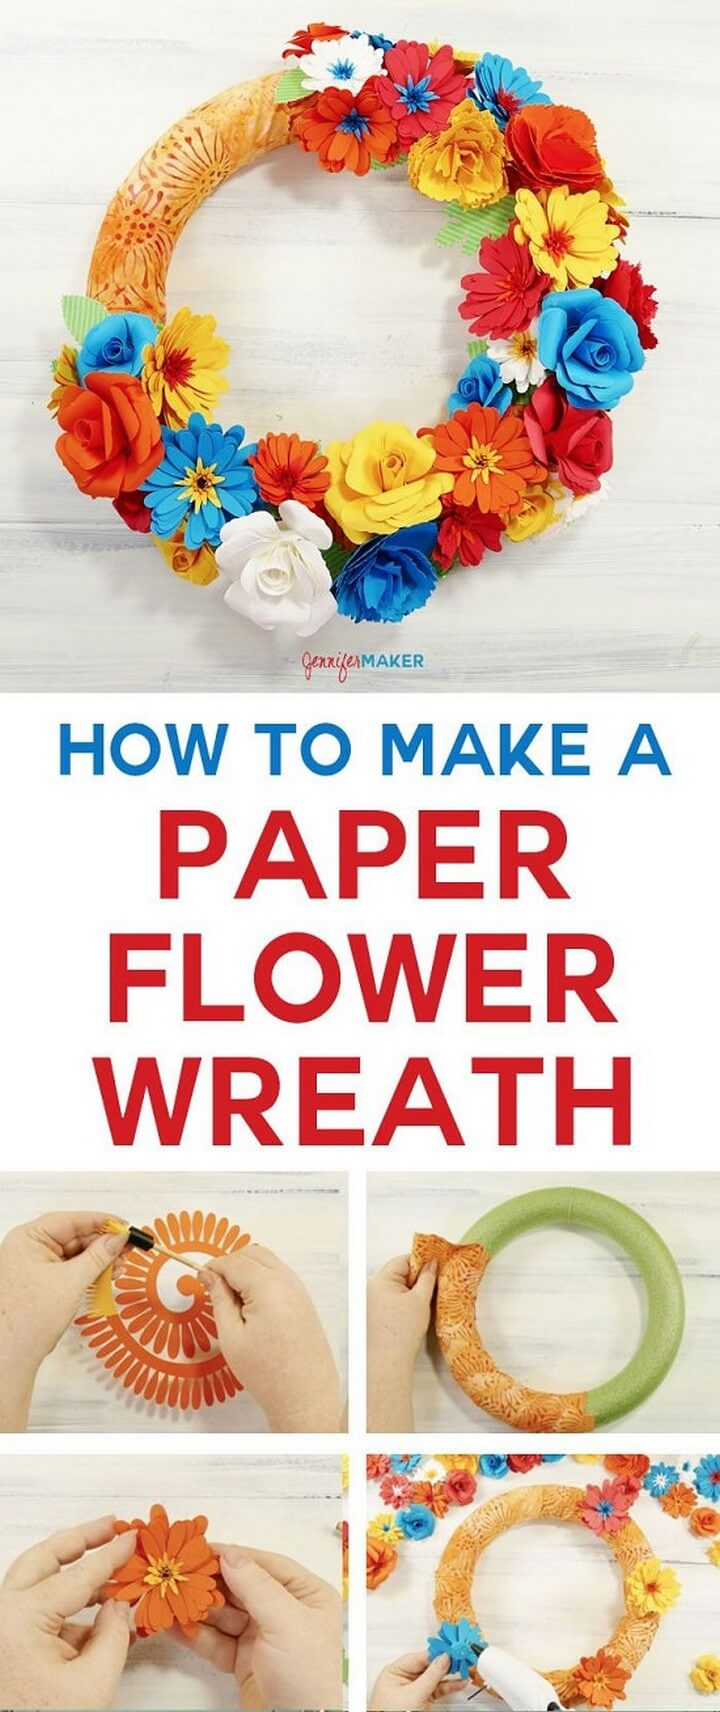 How To Make Paper Flower Wreath, diy home decor crafts, diy home decor projects, diy home decor pinterest, modern diy home decor, diy home decor ideas living room, diy hacks home decor, quirky diy home decor, diy ideas for the home, diy hacks home decor, cheap diy projects for your home, diy ideas for the home, diy home projects for beginners, modern diy home decor, diy home decor pinterest, diy home decor ideas living room, diy decor ideas for bedroom, cheap diy projects for your home, diy home projects for beginners, diy hacks home decor, diy ideas for the home, diy home decor pinterest, modern diy home decor, diy home decor ideas living room, quirky diy home decor, diy home decor, diy home decor idea, ideas diy home decor, diy home decor craft, diy home decor project, diy home decor projects, crafts diy home decor, pinterest diy home decor, diy home decor dollar tree, easy diy home decor ideas, diy home decor ideas living room, rustic diy home decor, diy home decor ideas budget, diy home decor ideas on a budget, dollar tree diy home decor 2018, diy home decor craft ideas, diy home decor projects cheap, diy home decor christmas, top diy home decor blogs, budget diy home decor, diy home decor youtube, simple diy home decor, thrift store diy home decor, elegant diy home decor, diy home decor websites, pinterest diy home decor projects, inexpensive diy home decor, diy home decor painting, hobby lobby diy home decor, easy cheap diy home decor, diy home decor crafts pinterest, diy home decor tutorials, pinterest diy home decor ideas, michaels diy home decor, vintage diy home decor, best diy home decor youtube channels, spring diy home decor, diy home decor instagram, diy home decor wall hangings, diy home decor christmas gifts, diy home decor flower vase, diy home decor ideas for small homes, diy home decor wine bottles, low cost diy home decor, diy home decor mason jars, diy home decor books, diy home decor living room, diy home decor craft projects, diy home decor canvas art, unique diy home decor ideas, diy home decor magazine, 33 cool diy home decor ideas, affordable diy home decor, quirky diy home decor, step by step diy home decor, diy home decor from recycled materials, diy home decor for apartments, simple diy home decor ideas, disney diy home decor, valentine's day diy home decor, diy home decor ideas kitchen, diy home decor recycled, simple diy home decor projects, diy home decor bathroom, diy home decor ideas india, easy diy home decor pinterest, how to diy home decor, arts and crafts diy home decor, diy home decor with cardboard, diy home decor ideas bathroom, diy home decor projects on a budget, 21 magical and easy diy home decor ideas, diy home decor wall art, diy home decor with household items, creative diy home decor, easy diy home decor crafts, dollar tree diy home decor ideas, beautiful diy home decor, buzzfeed diy home decor, diy home decor ideas for diwali, diy home decor malaysia, inexpensive diy home decor ideas, diy home decor ideas with pallets, indian diy home decor blog, diy home decor with glass bottles, diy home decor crafts blog, diy home decor ideas for christmas, diy home decor ideas from waste, diy home decor ideas videos, diy home decor for diwali, diy home decor online, 19 awesome diy home decor, diy home decor for small spaces, diy home decor accessories, diy home decor with hot glue gun, diy home decor paper crafts, diy home decor indian style, diy home decor halloween, creative diy home decor ideas, diy home decor kitchen, pinterest diy home decor on a budget, diy home decor organization, diy home decor ideas 2018, pinterest diy home decor gifts, diy home decor subscription box, diy home decor outdoor, diy home decor south africa, diy home decor 2016, diy home decor out of waste, diy home decor on the cheap, diy home decor ideas youtube, diy home decor using household items, diy home decor maybaby, diy home decor craft kit, diy home decor and organization, diy home decor using cans, diy home decor on a budget pinterest, diy home decor bloggers, diy home decor using nature, diy home decor small apartment, diy home decor using branches, diy home decor minimalist, diy home decor tv shows, instagram diy home decor, diytomake.com